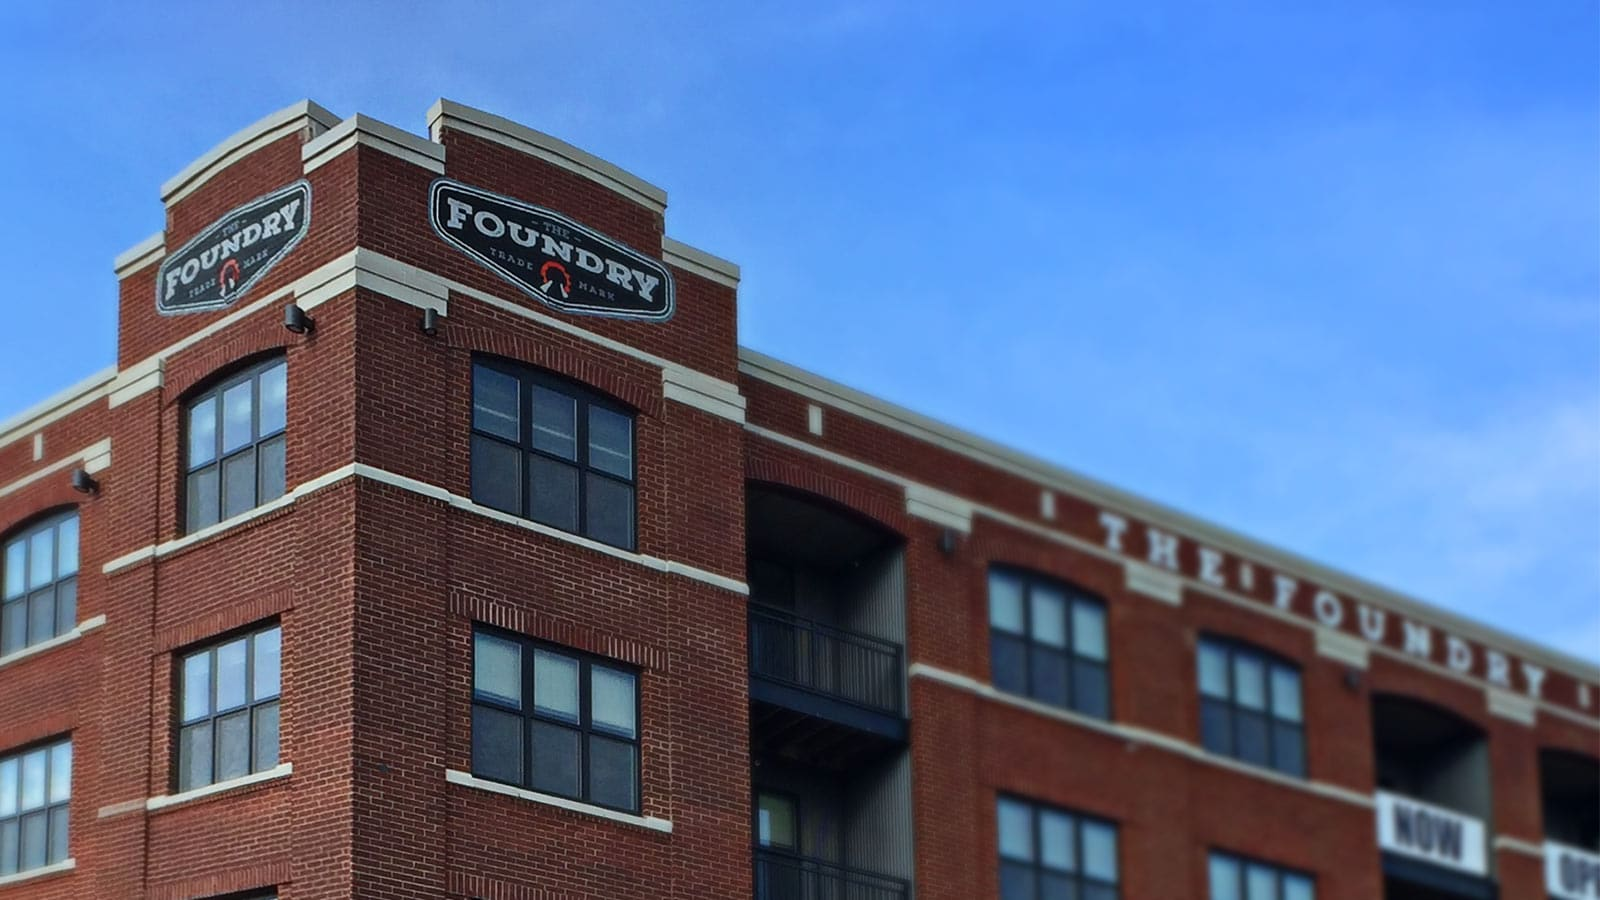 Exterior view of Foundry Apartments